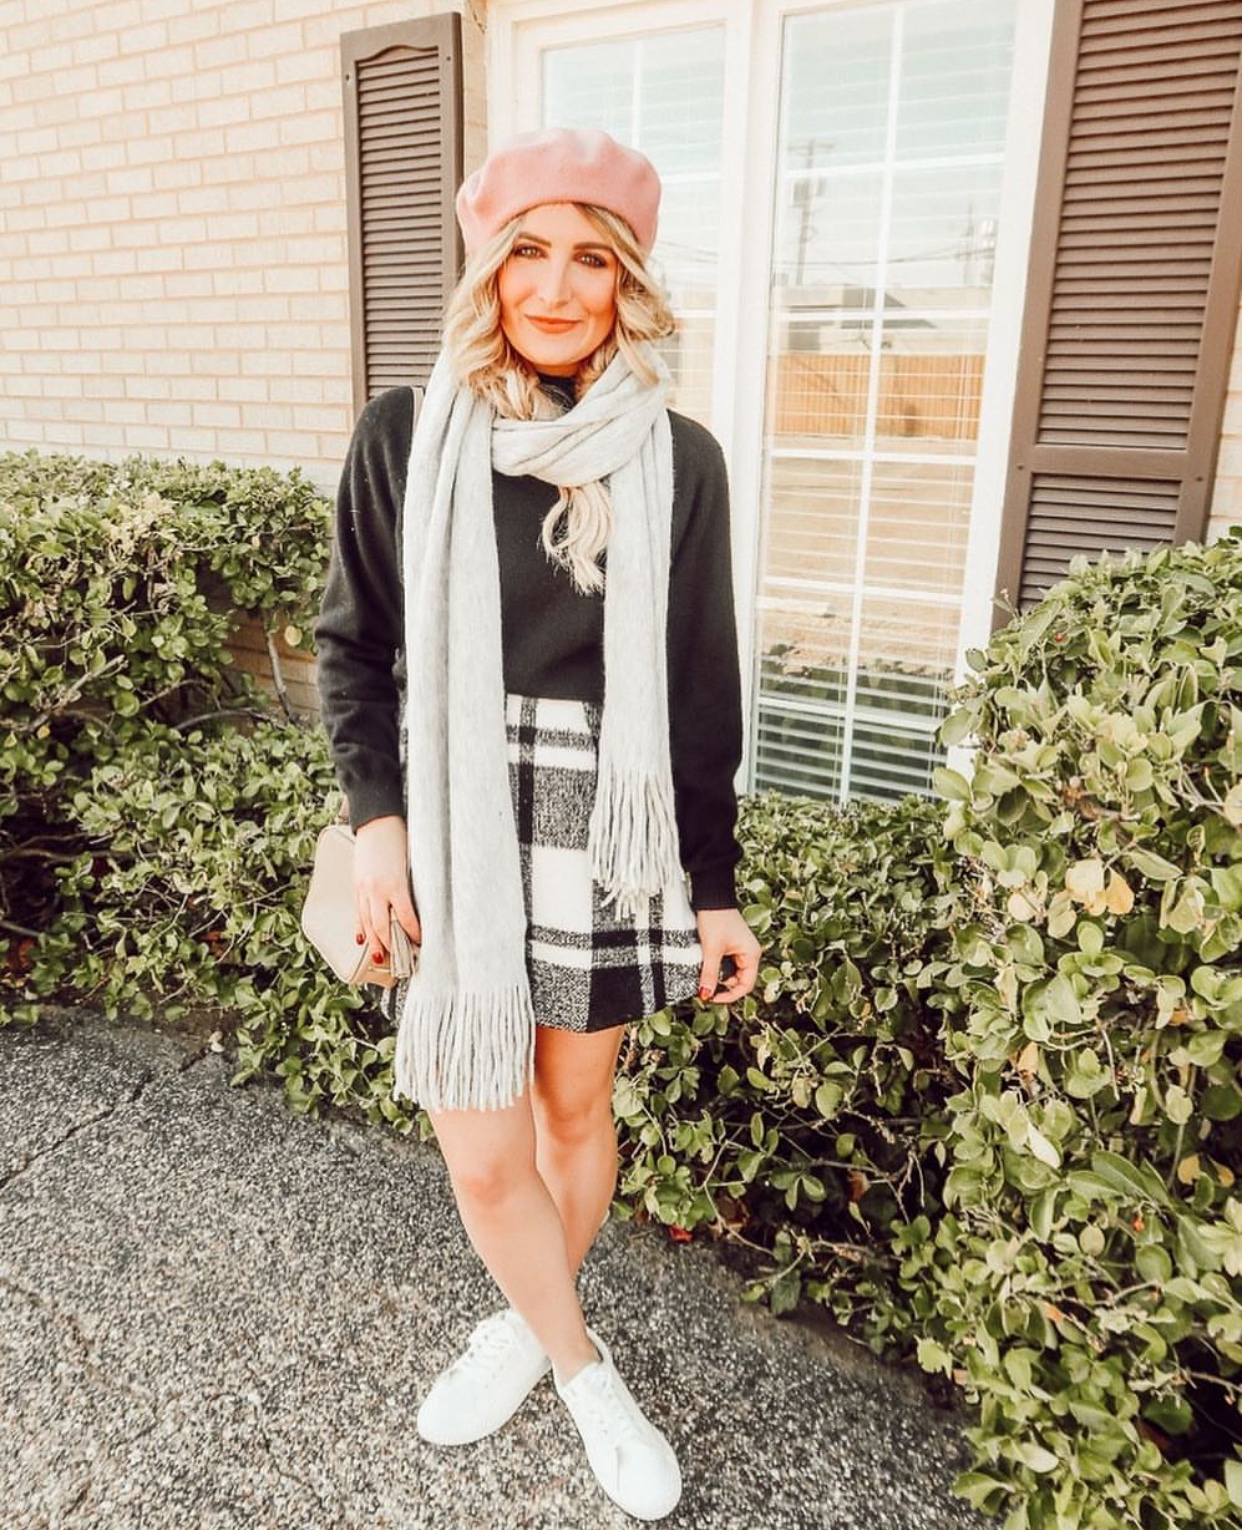 Parisian chic | Beret | Audrey Madison Stowe a fashion and lifestyle blogger